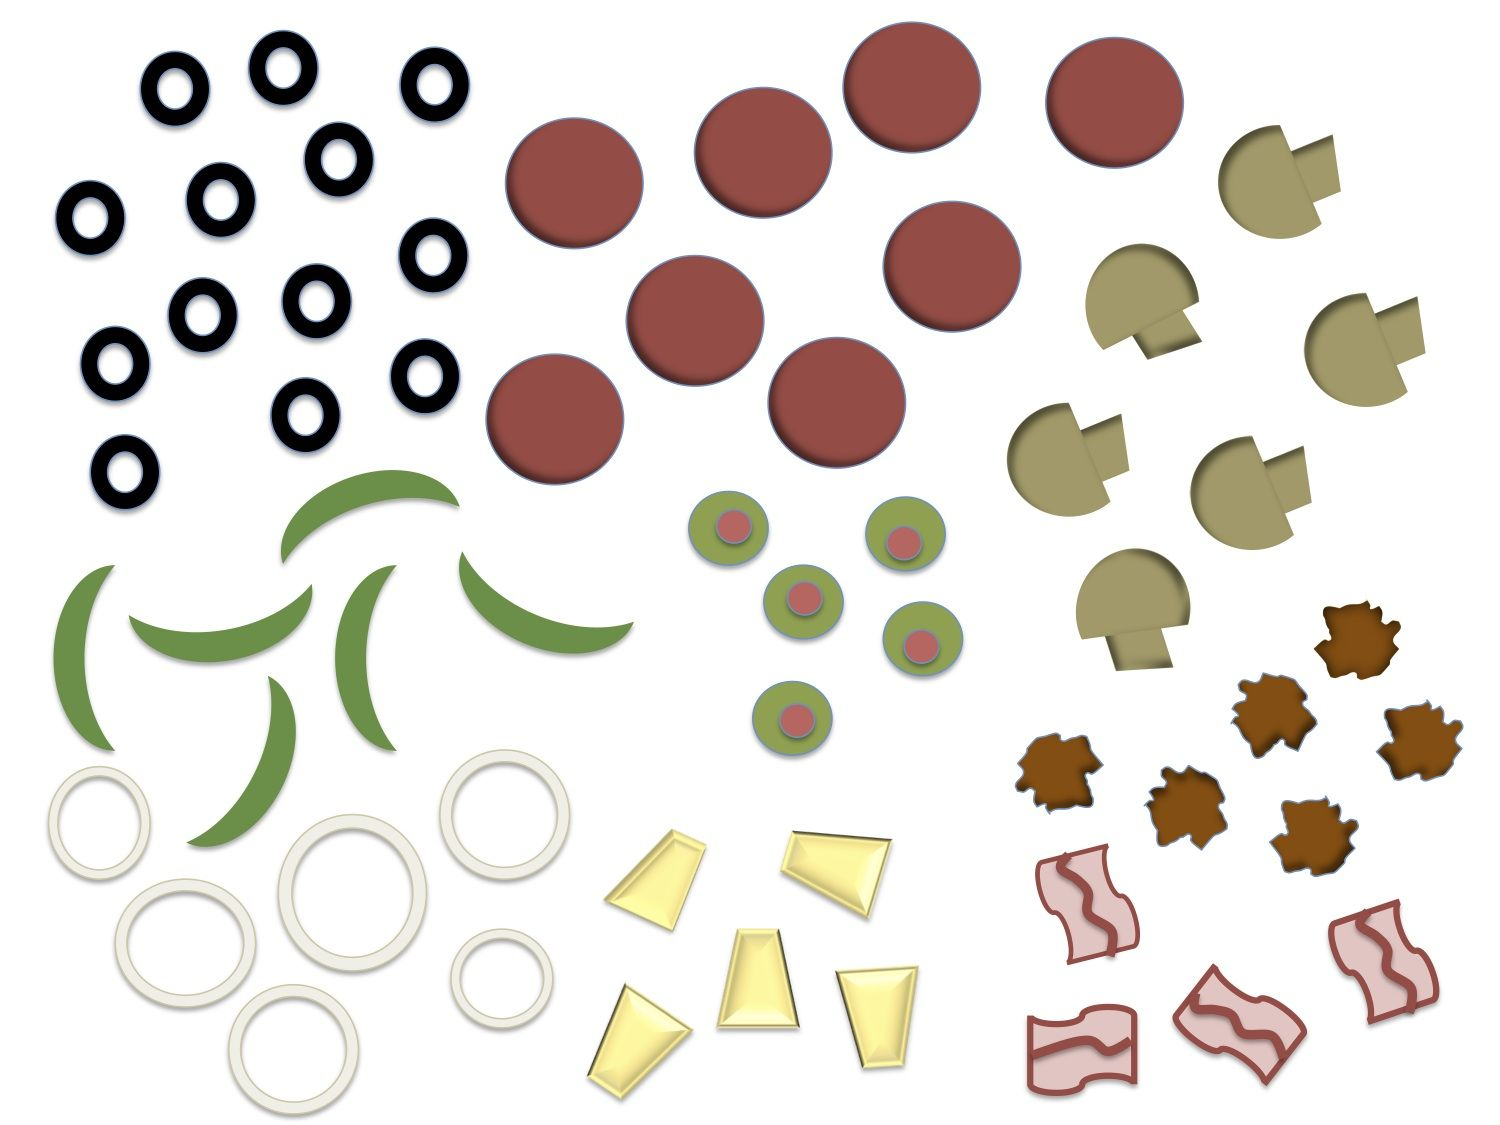 Printable pizza toppings.